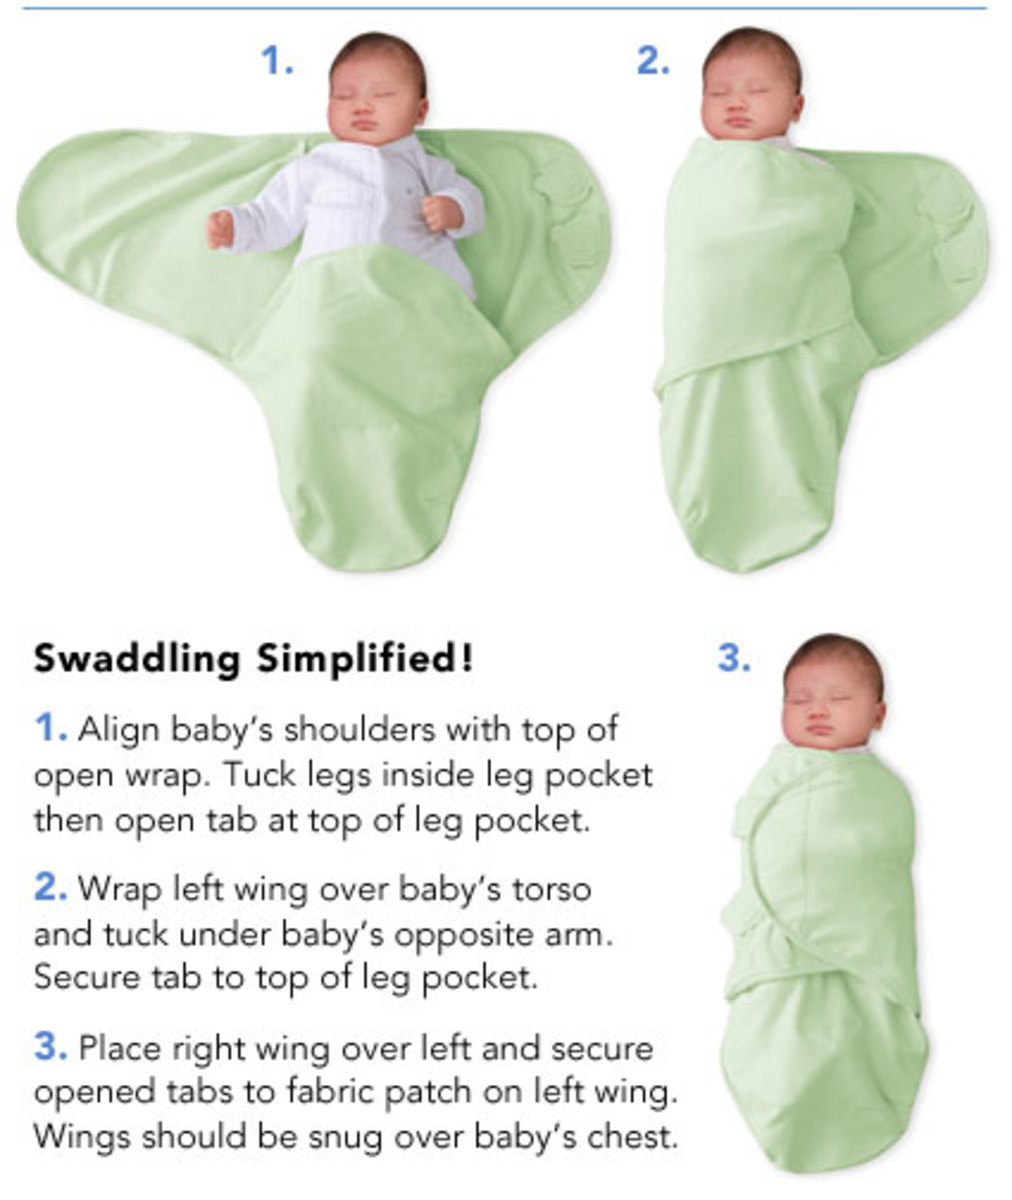 Step by step photo reference http://www.allbabyneeds.co.uk/Shop/swaddleme-3-pack-pink-swaddling-wraps-small/prod_2584.html